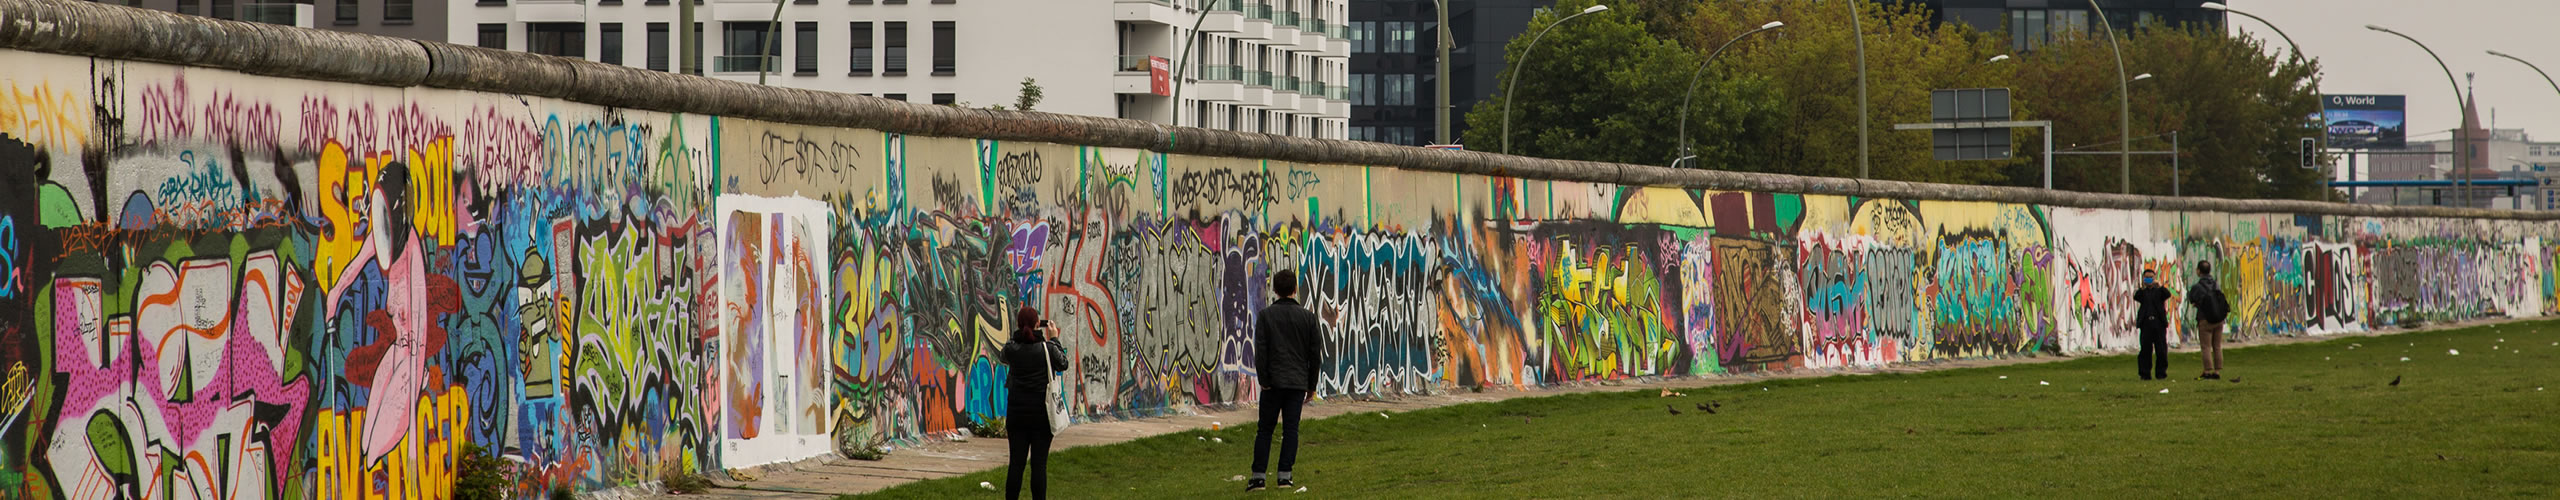 THINK Week in Review: Berlin Wall Edition